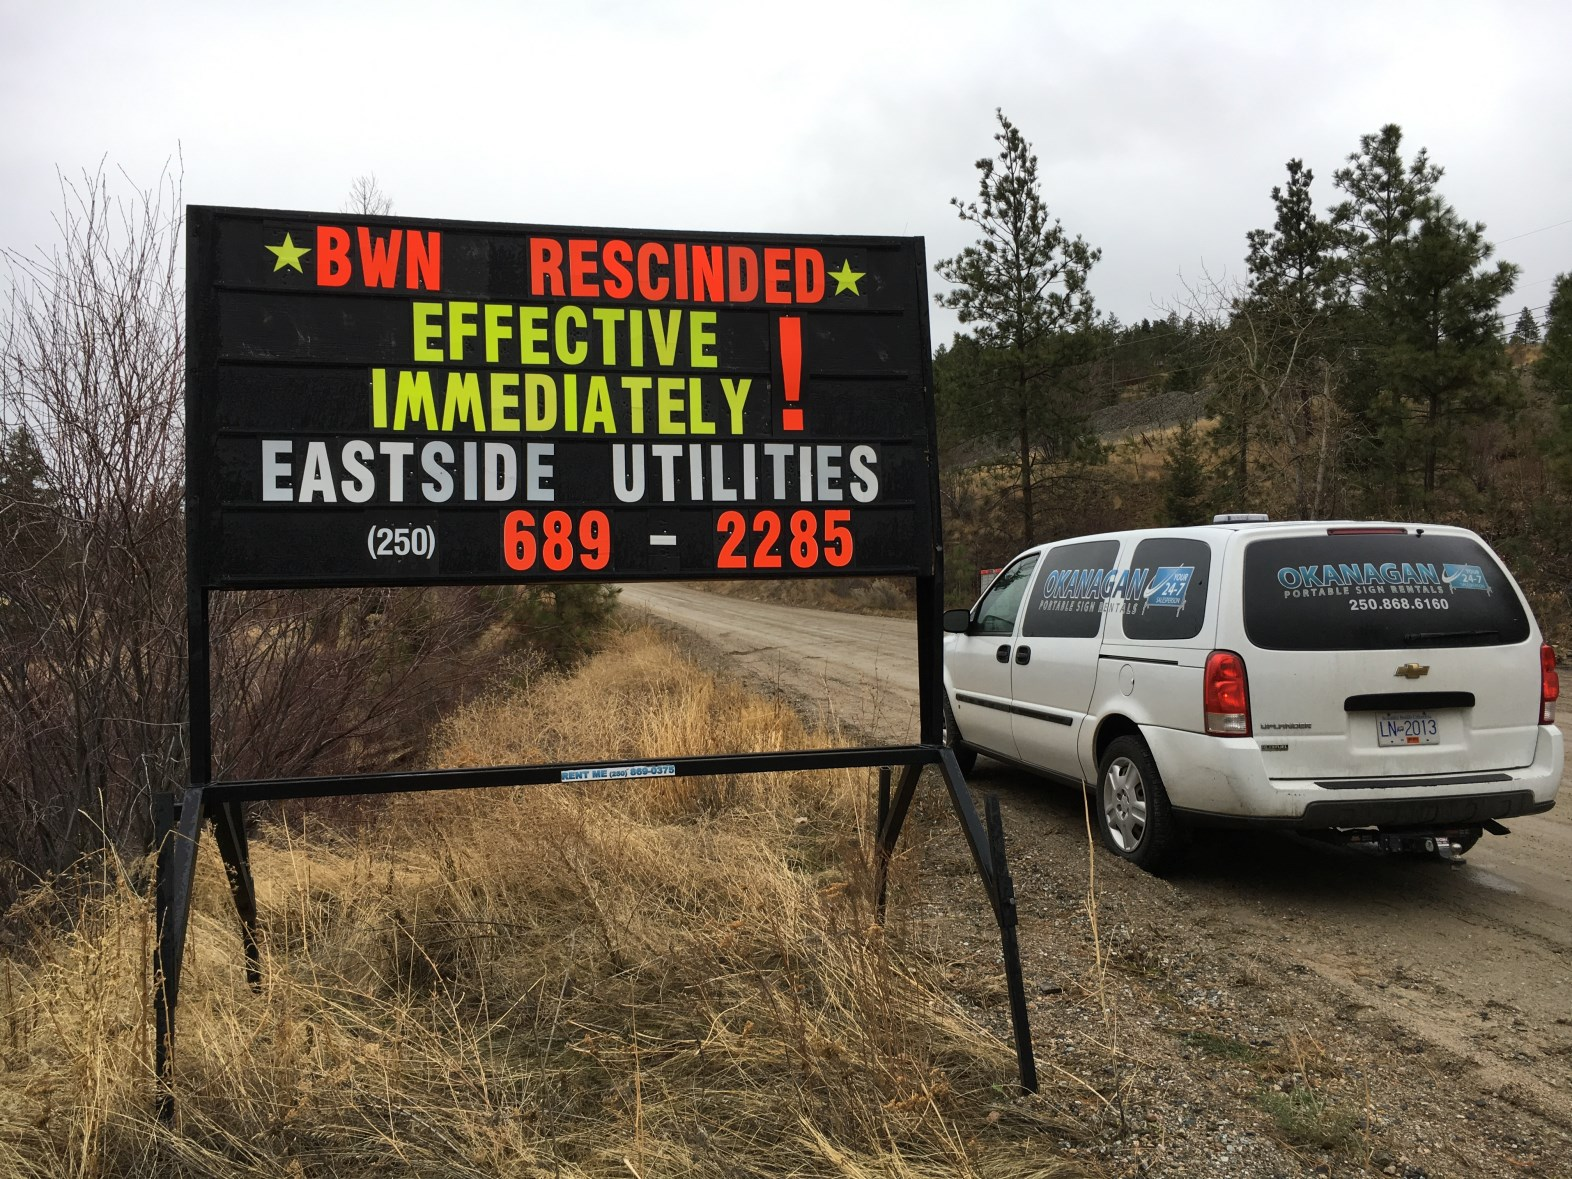 Eastside Water Utility BWN Rescinded Nov 27 2017